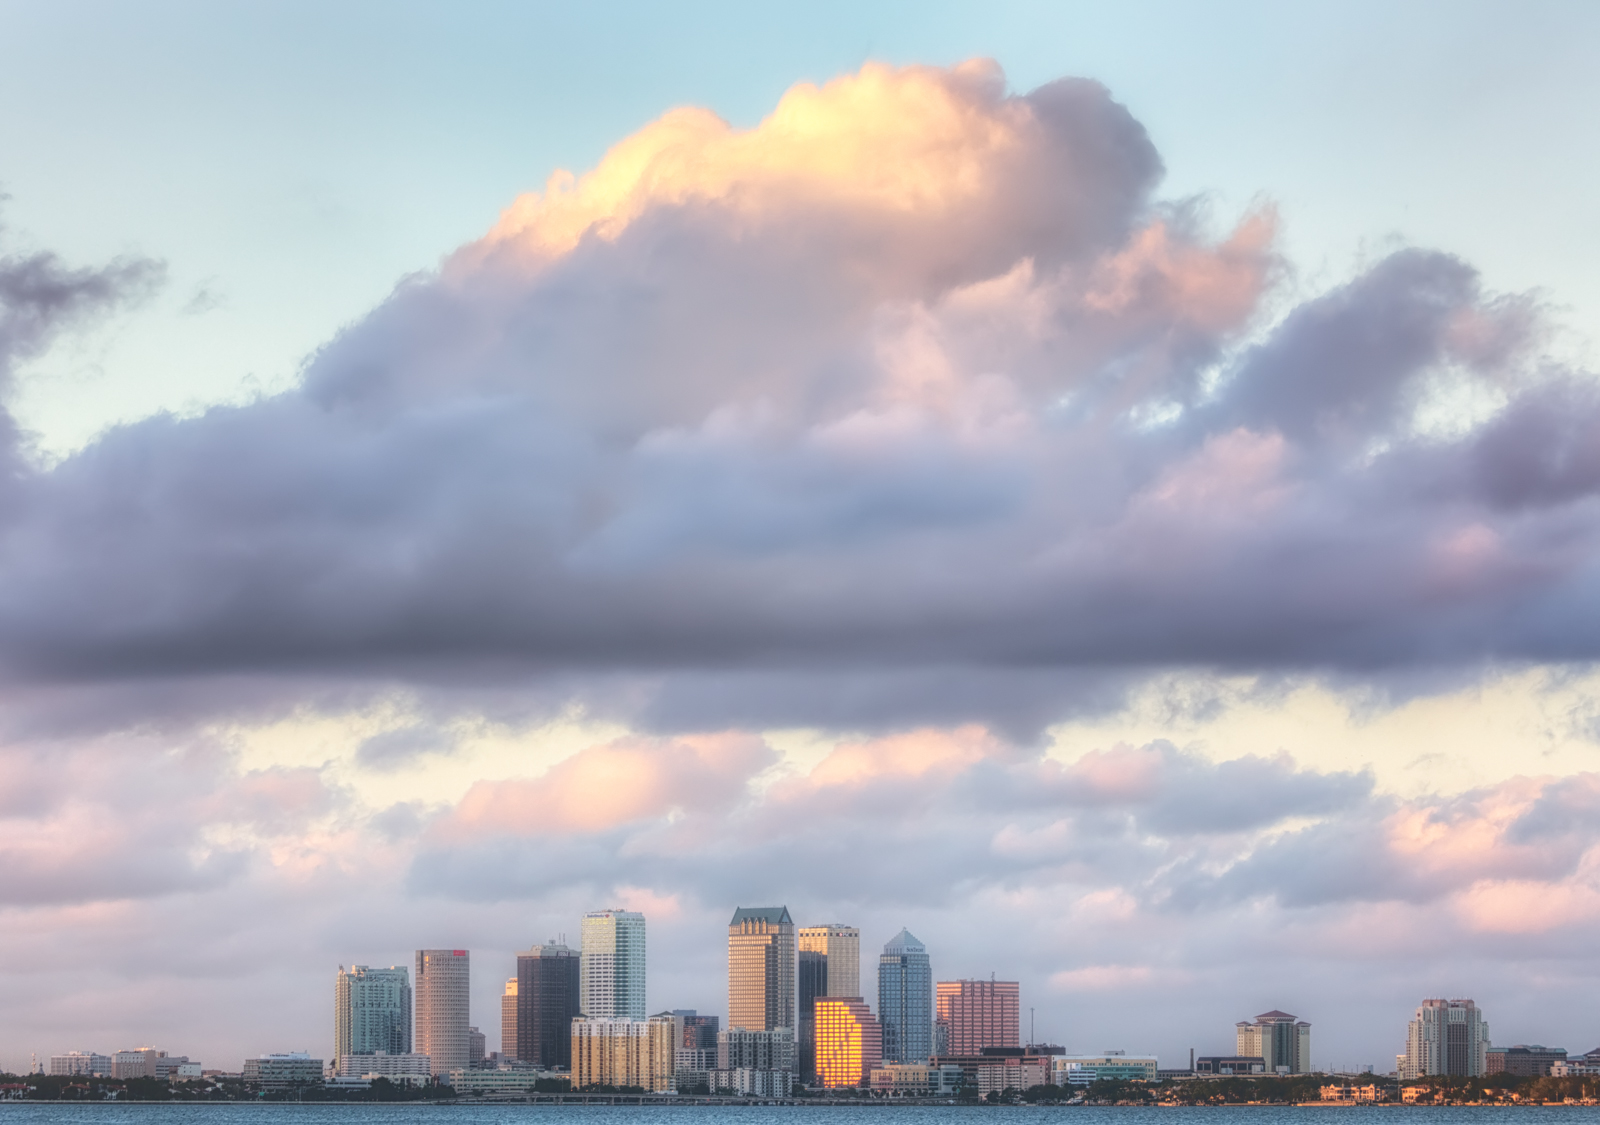 Tampa Skyline with Big Clouds